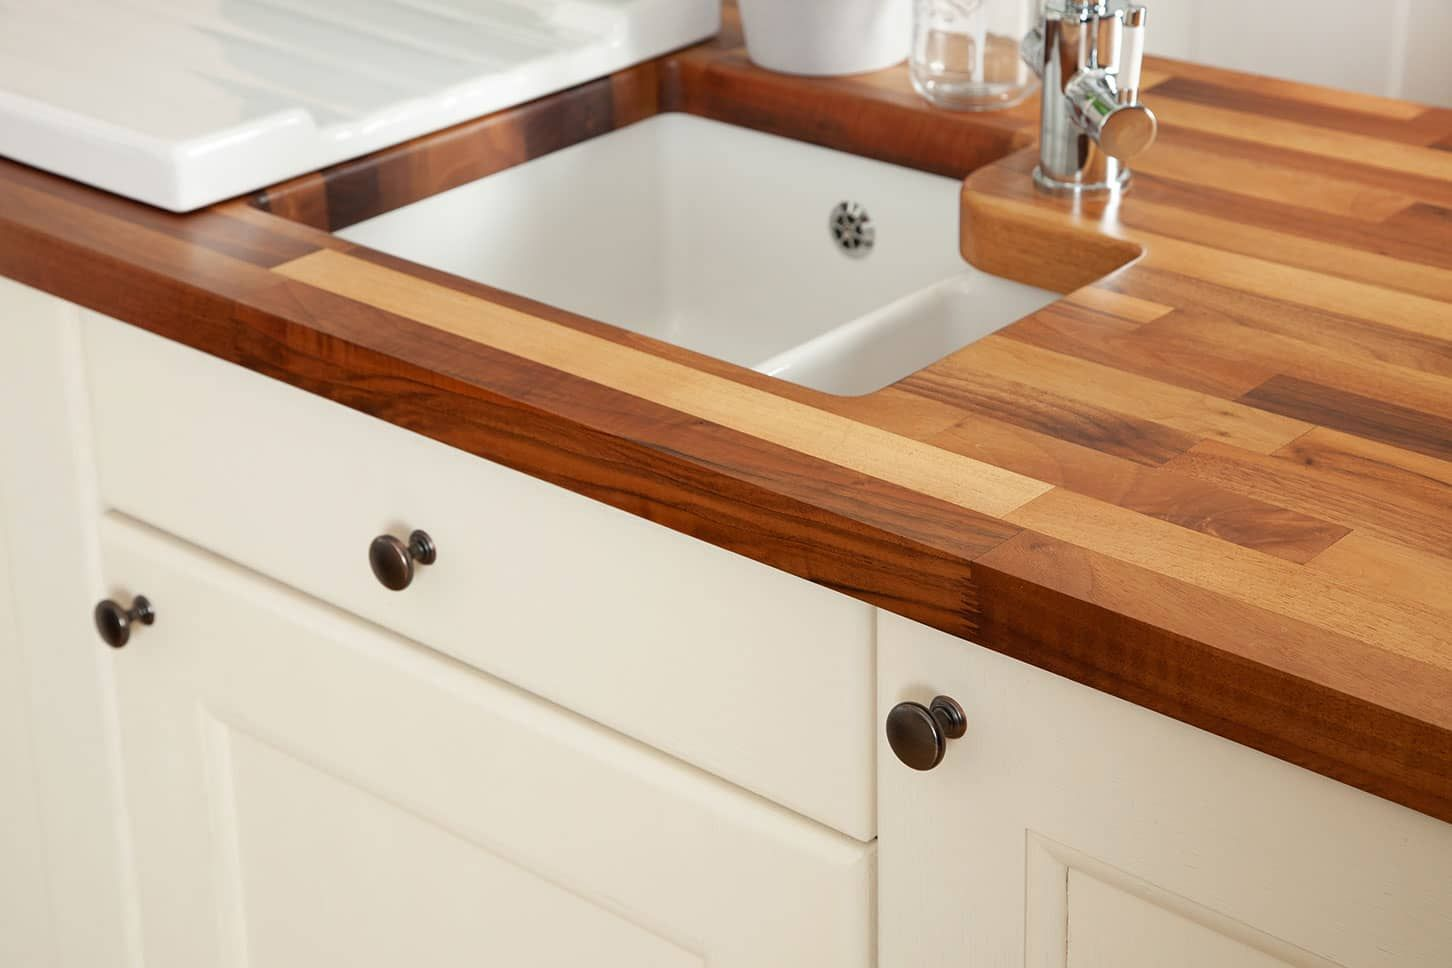 Huge Range Of Solid Walnut Worktops At Worktop Express The Uk S 1 Online Supplier Next Day Delivery Available Order Your Walnut Kitchen Walnut Kitchen Kitchen Home Decor